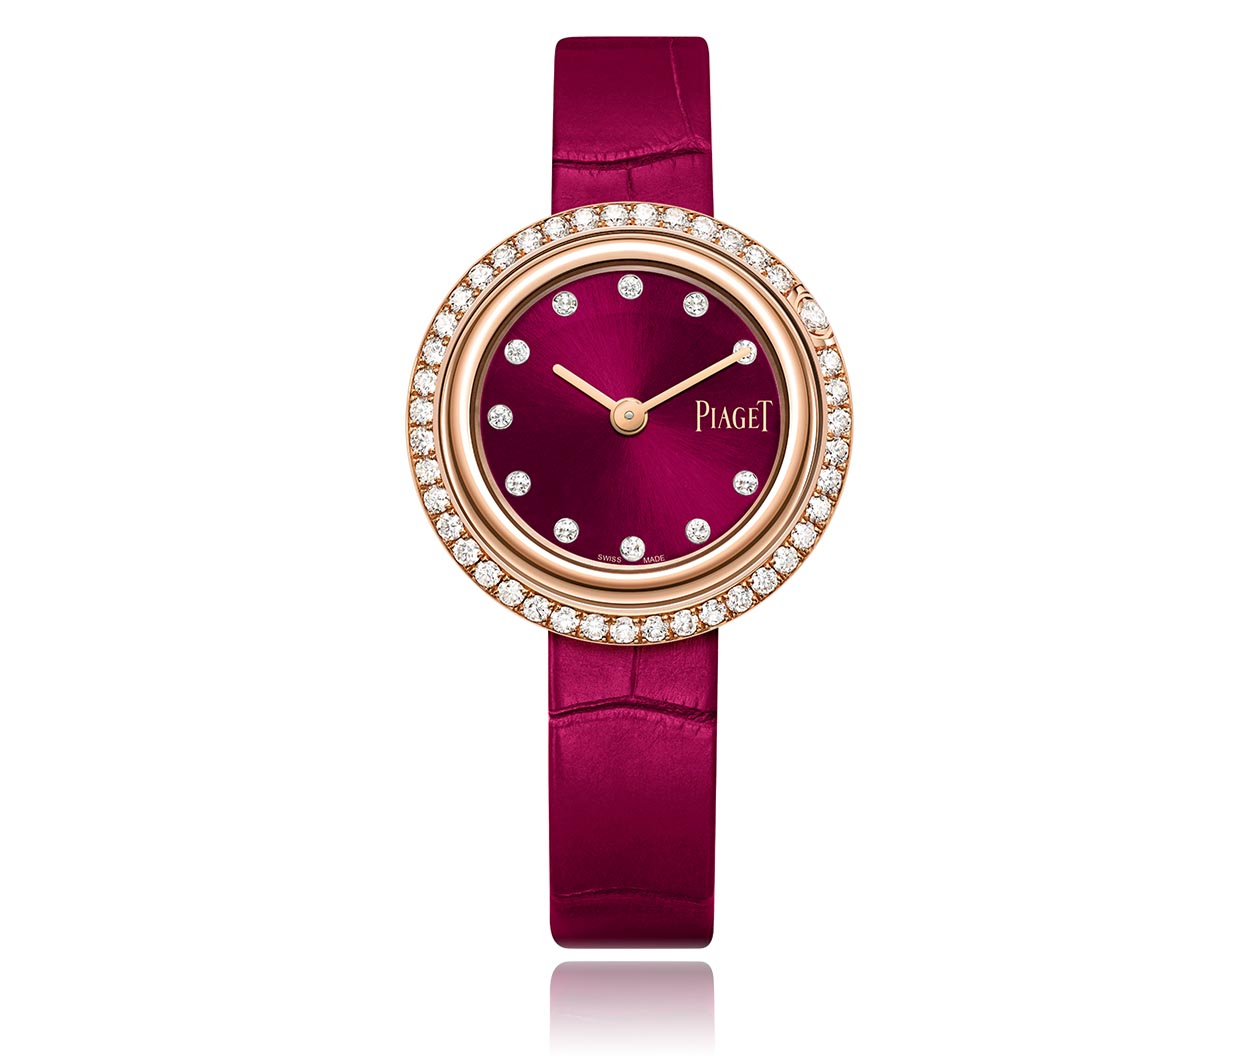 Piaget Possession watch G0A44096 Carousel 1 FINAL